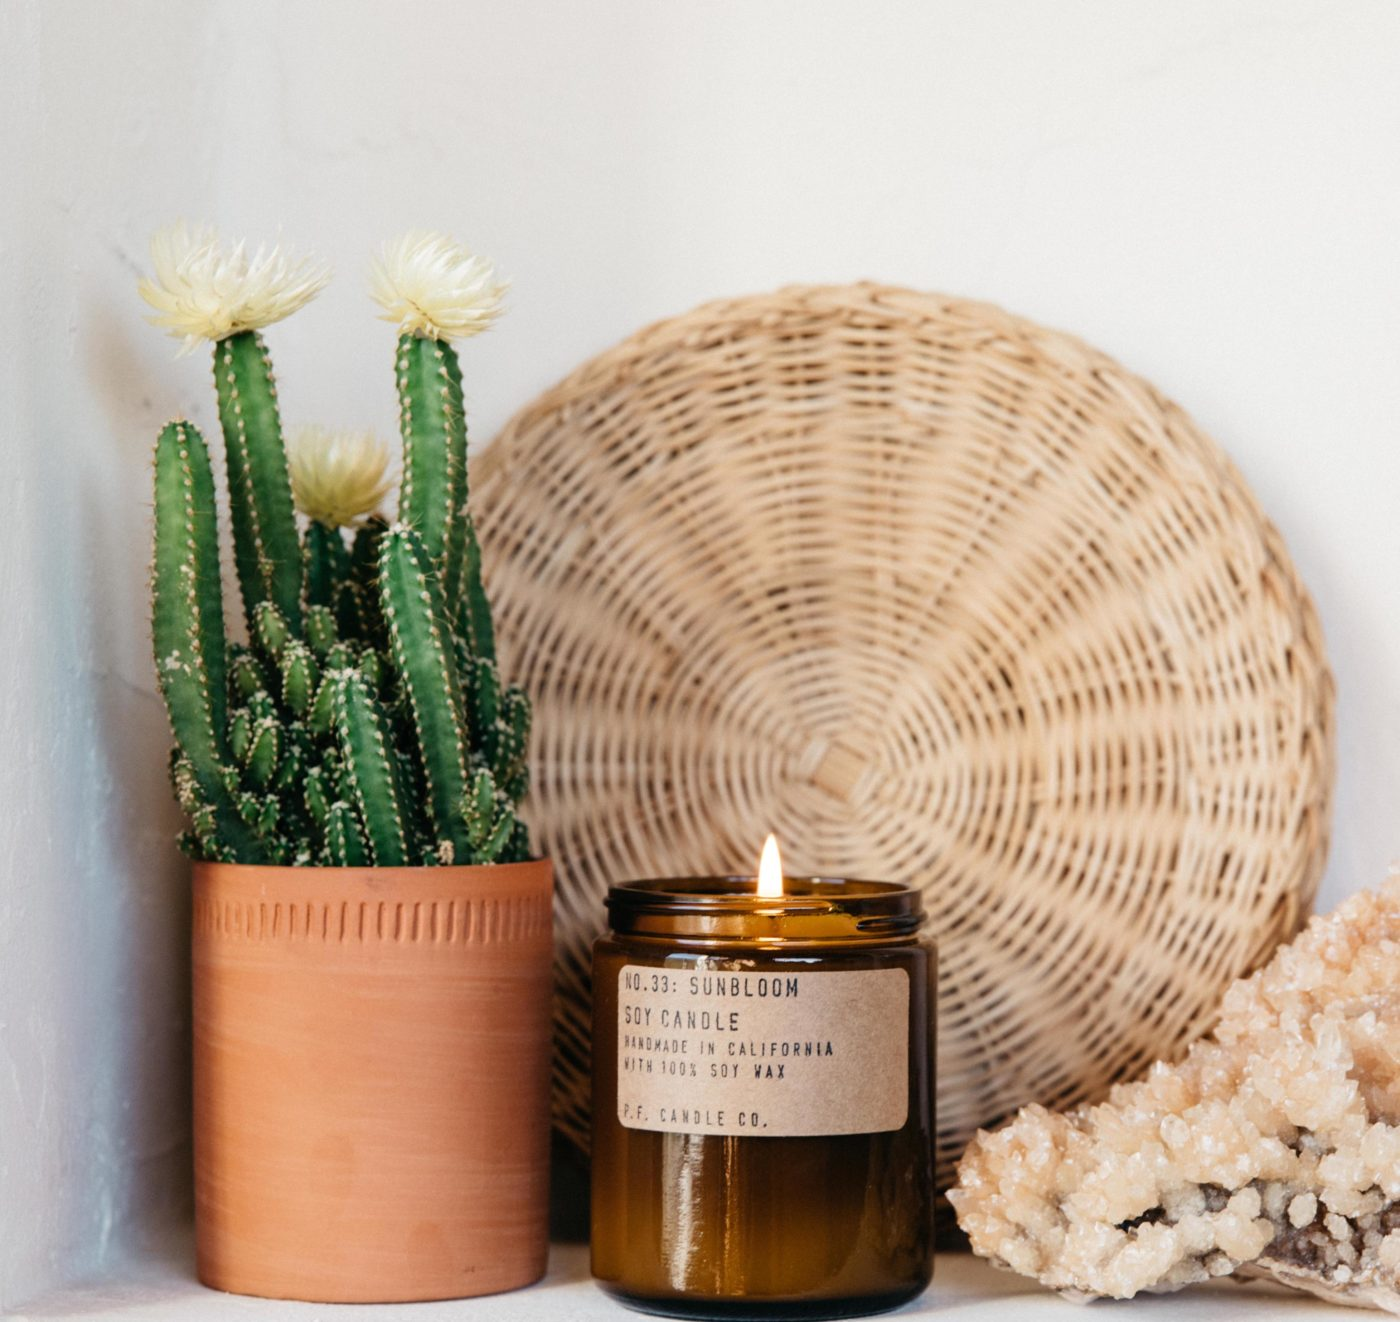 sunbloom scented candle beside cactus